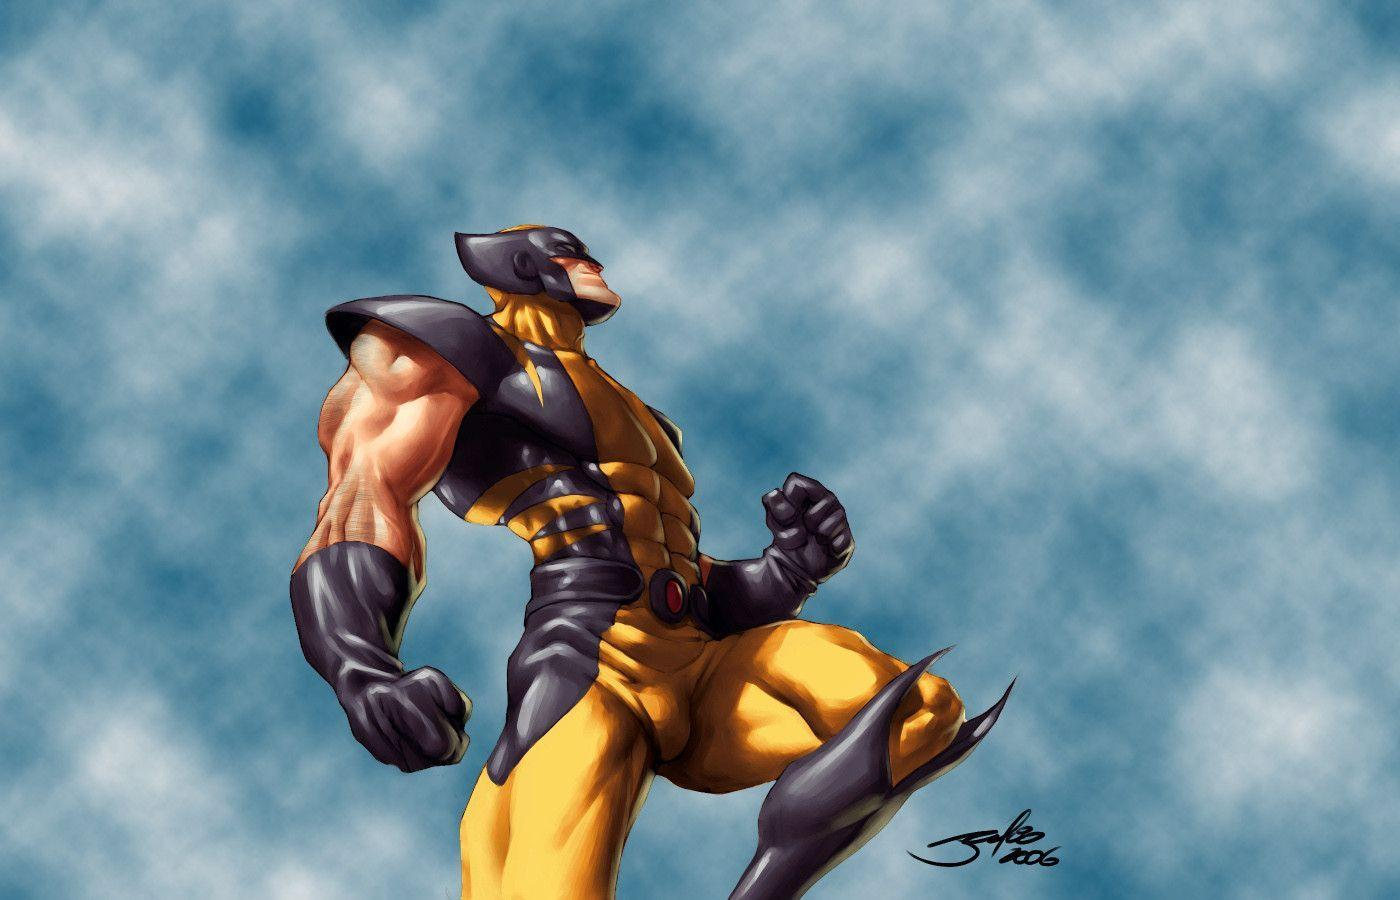 Must see Wallpaper Marvel Wolverine - RQ1XNBh  Pic_521333.jpg